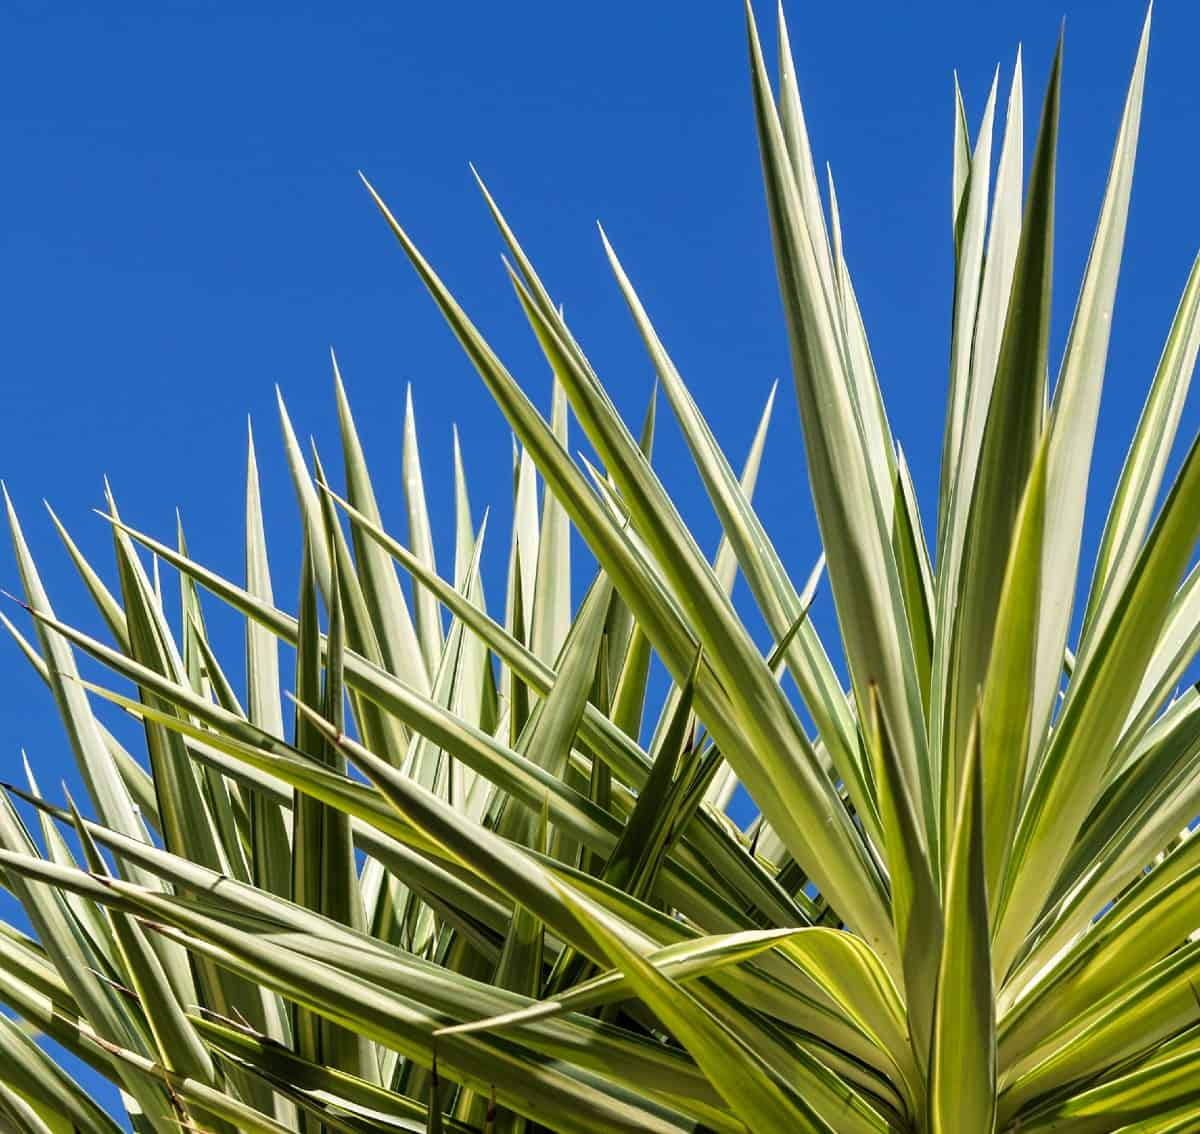 Put your pot of golden sword yucca in the sun for the best results.